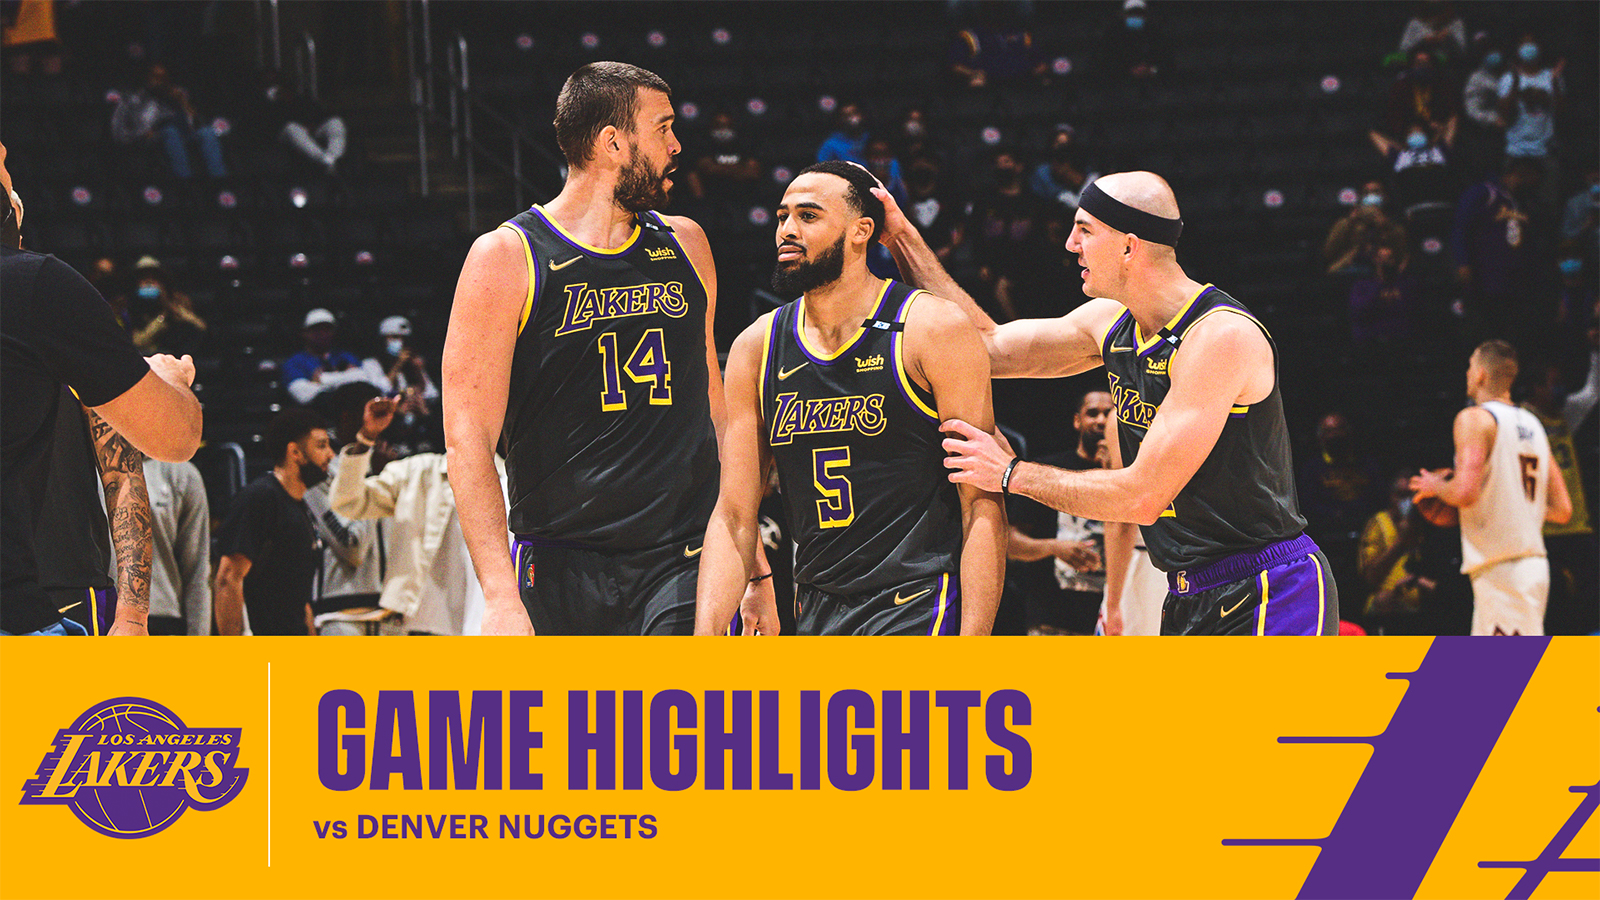 HIGHLIGHTS | Los Angeles Lakers vs Denver Nuggets